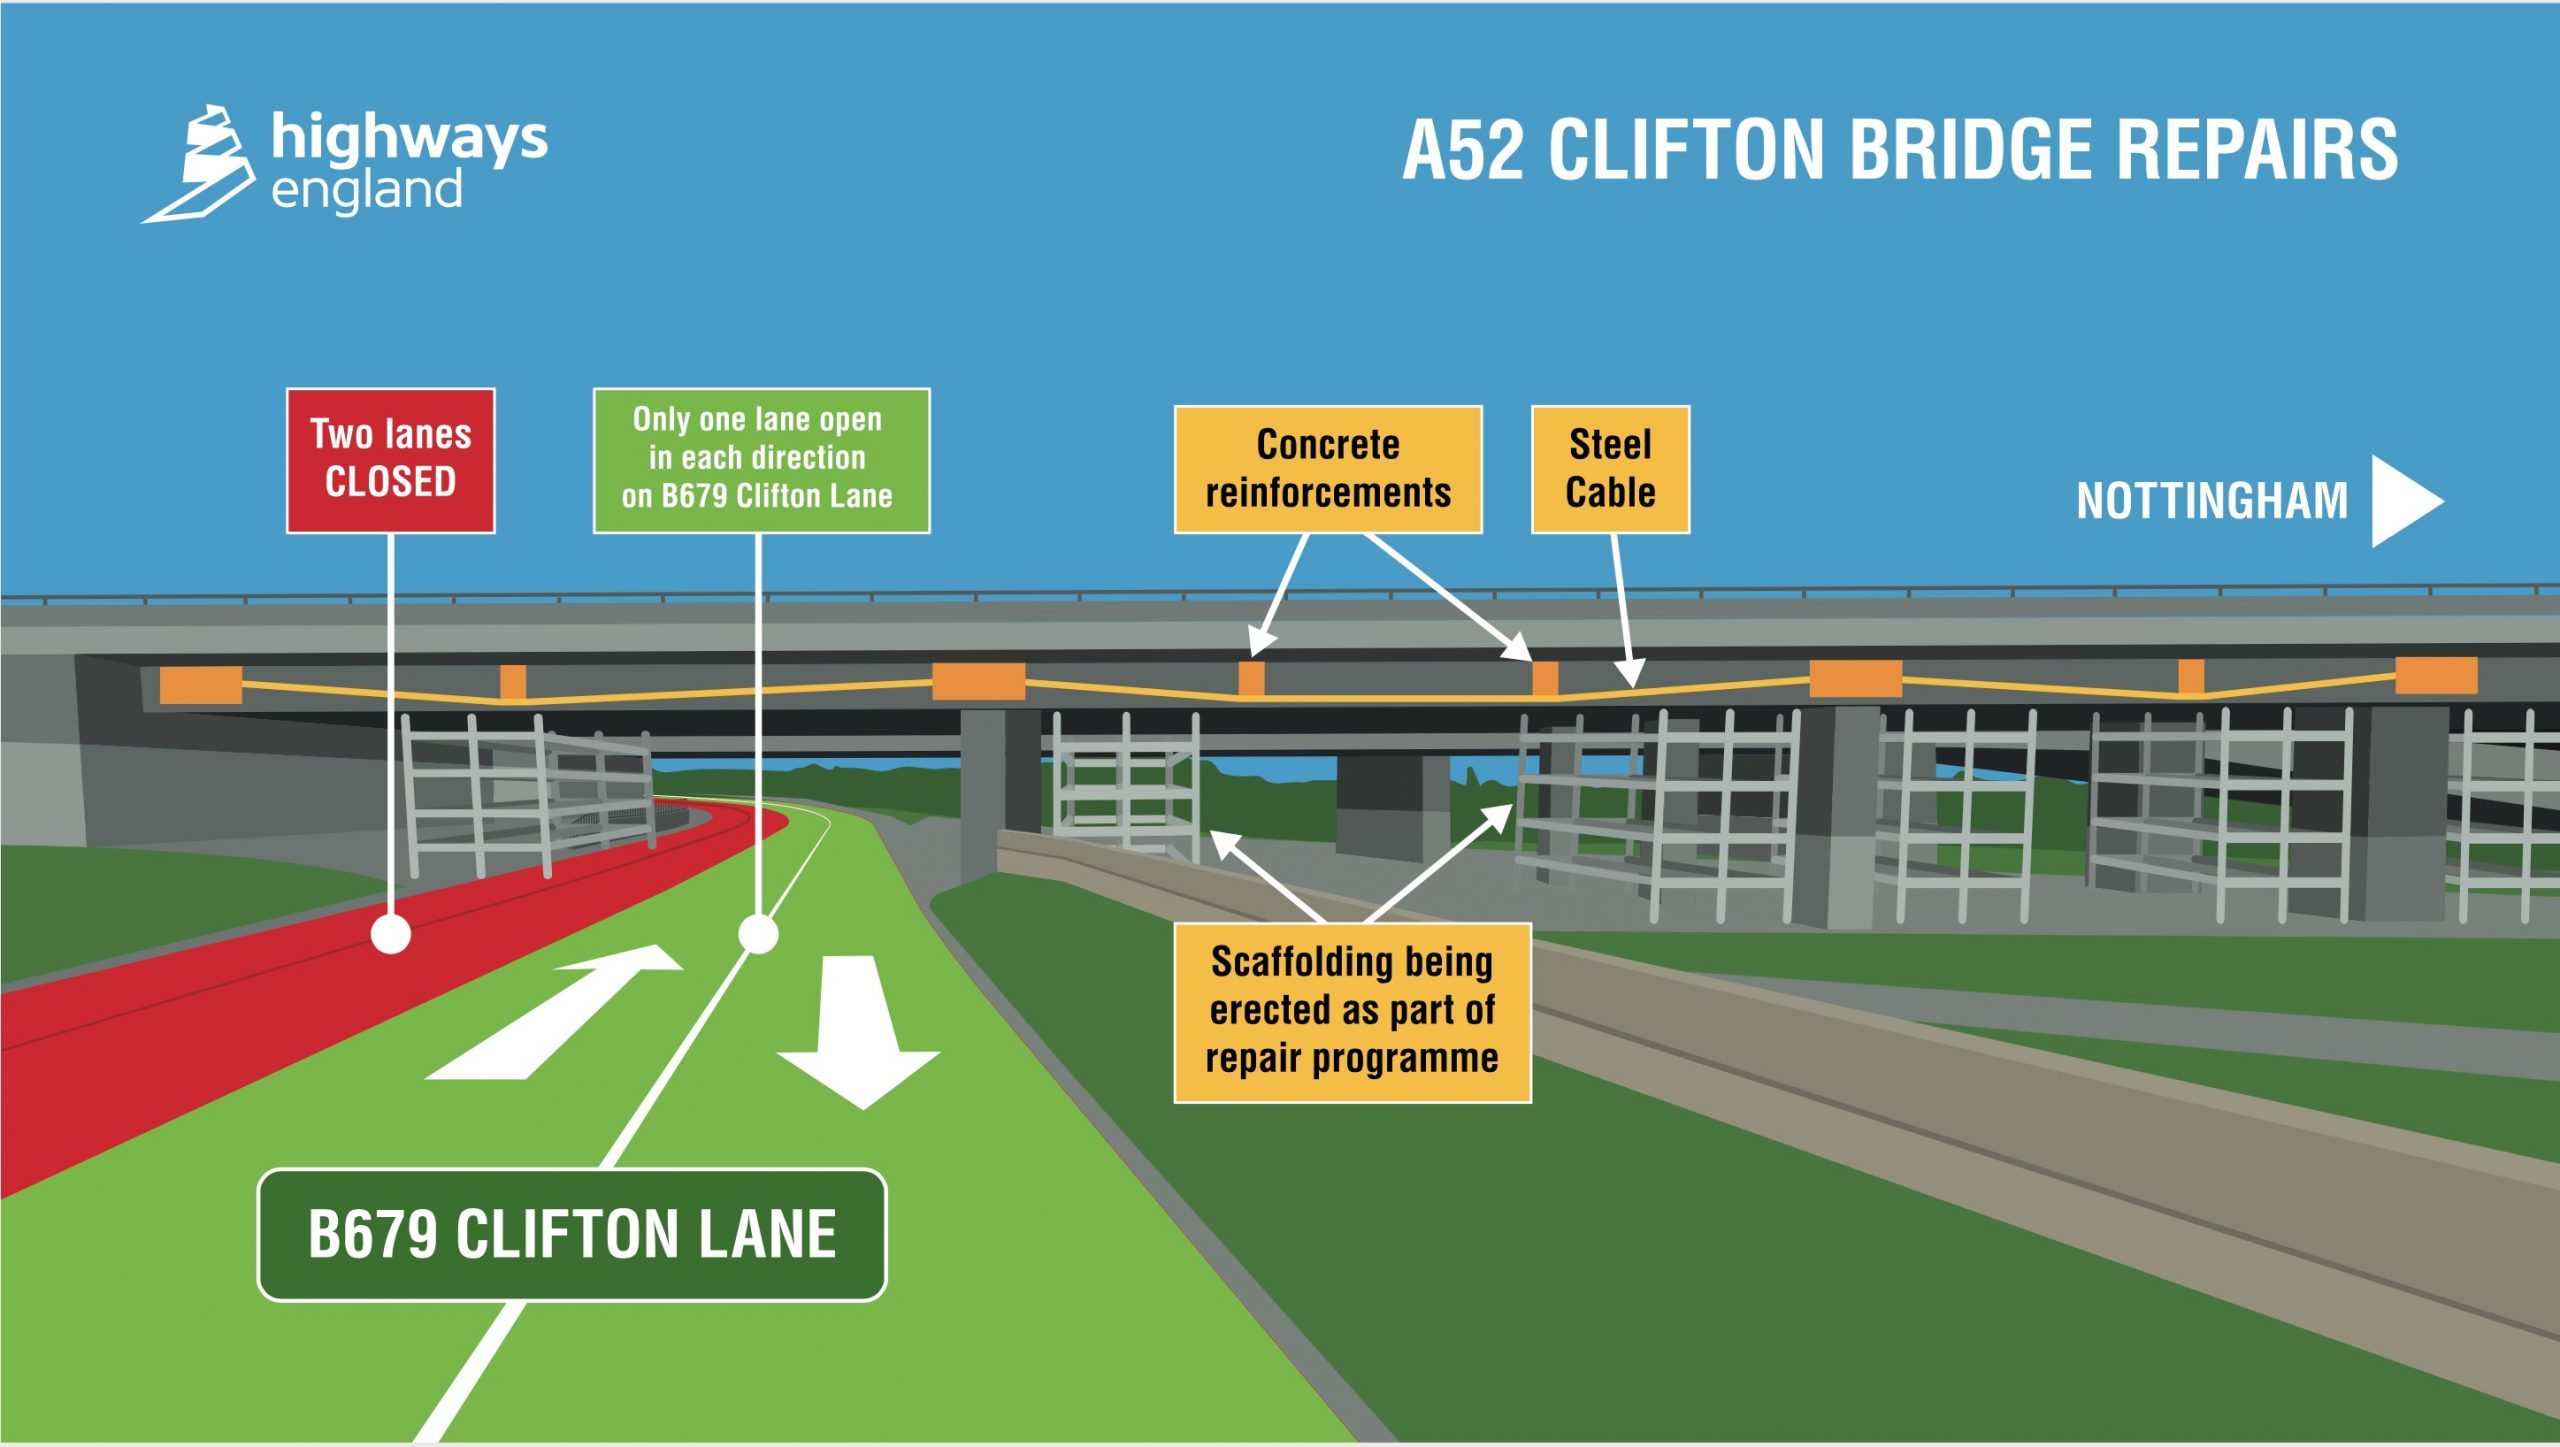 A52 Clifton Bridge update June 2020